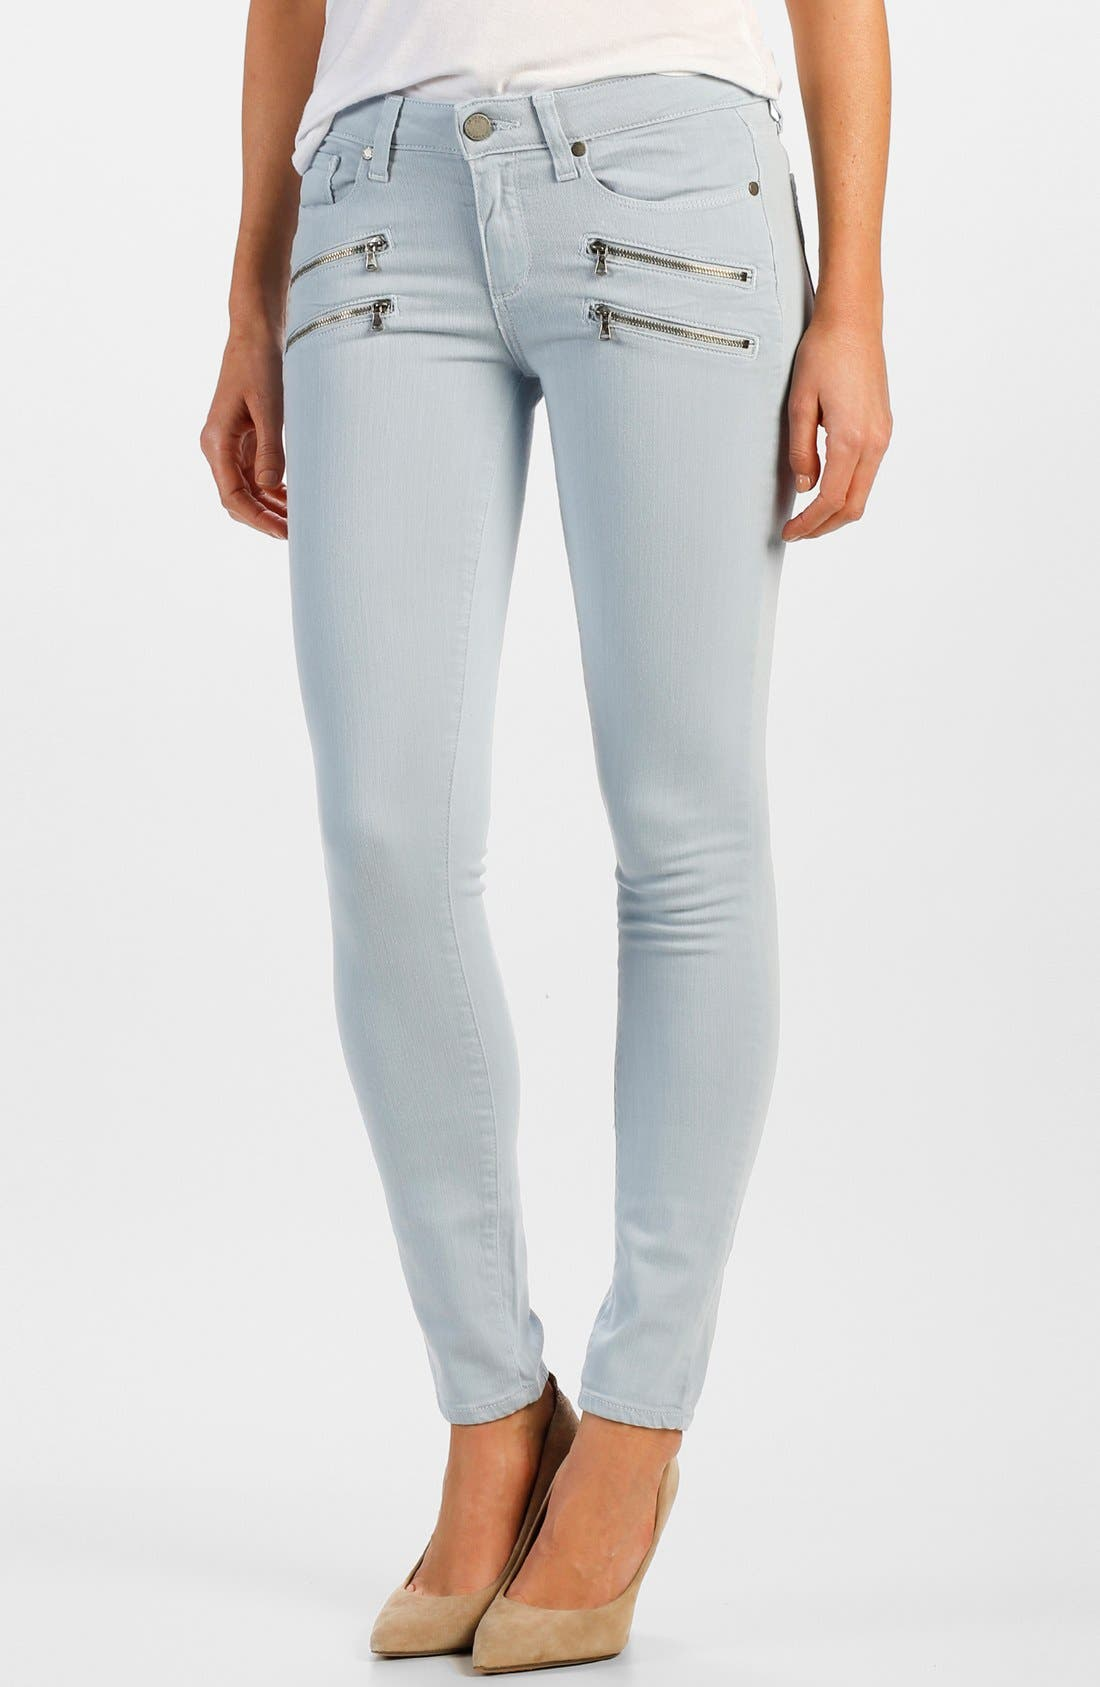 Alternate Image 1 Selected - Paige Denim 'Edgemont' Zip Detail Ultra Skinny Jeans (Powder Blue)